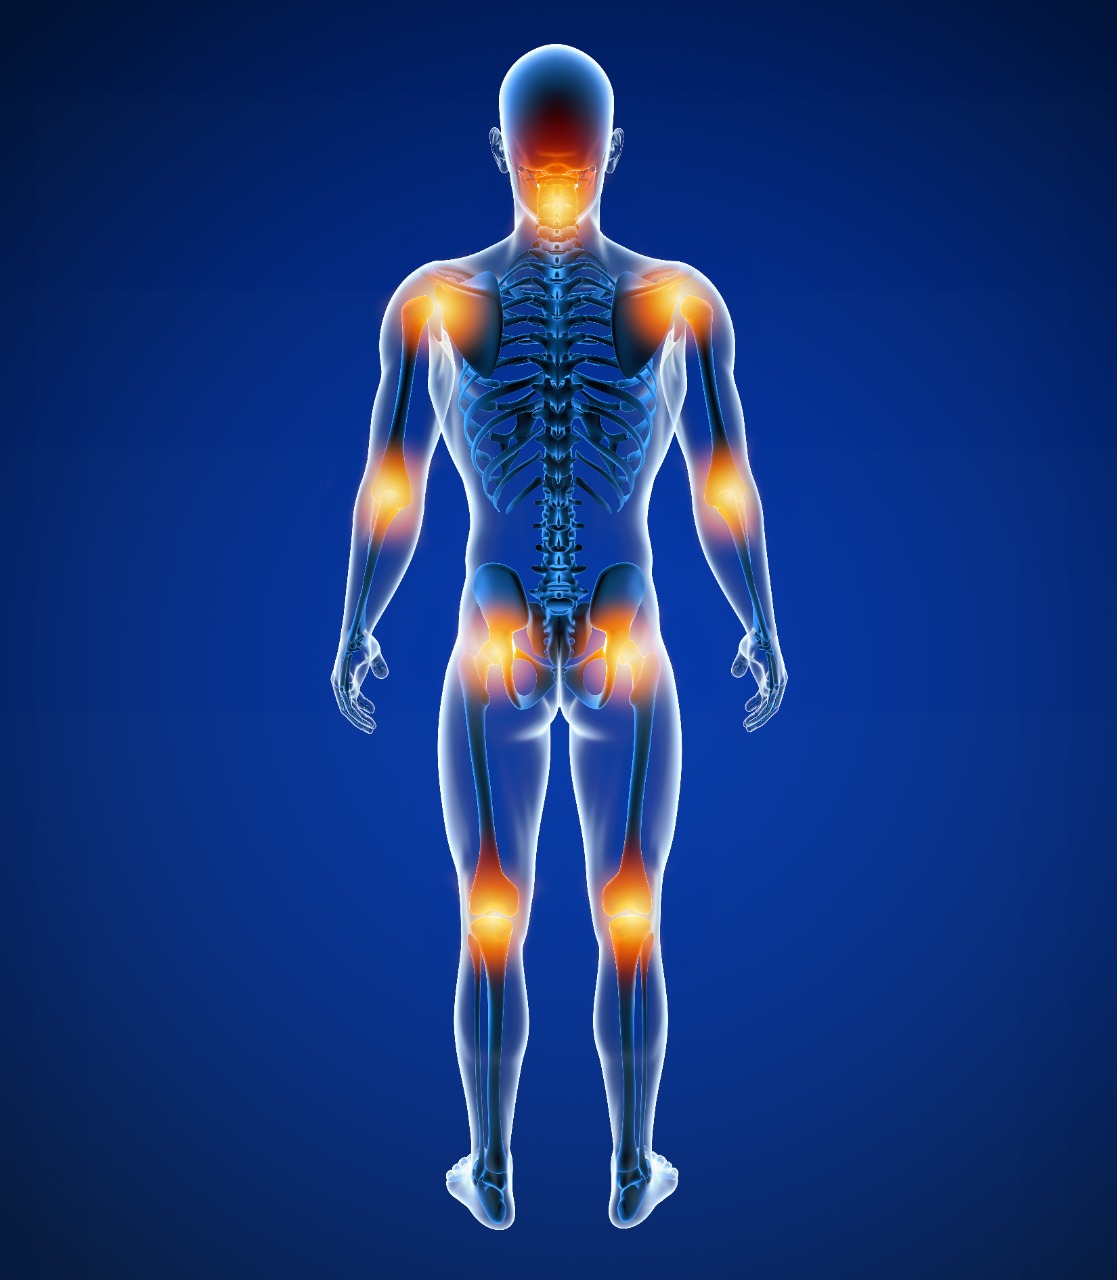 Indian diet plan for fibromyalgia ( What to Eat to reduce Body Pain )